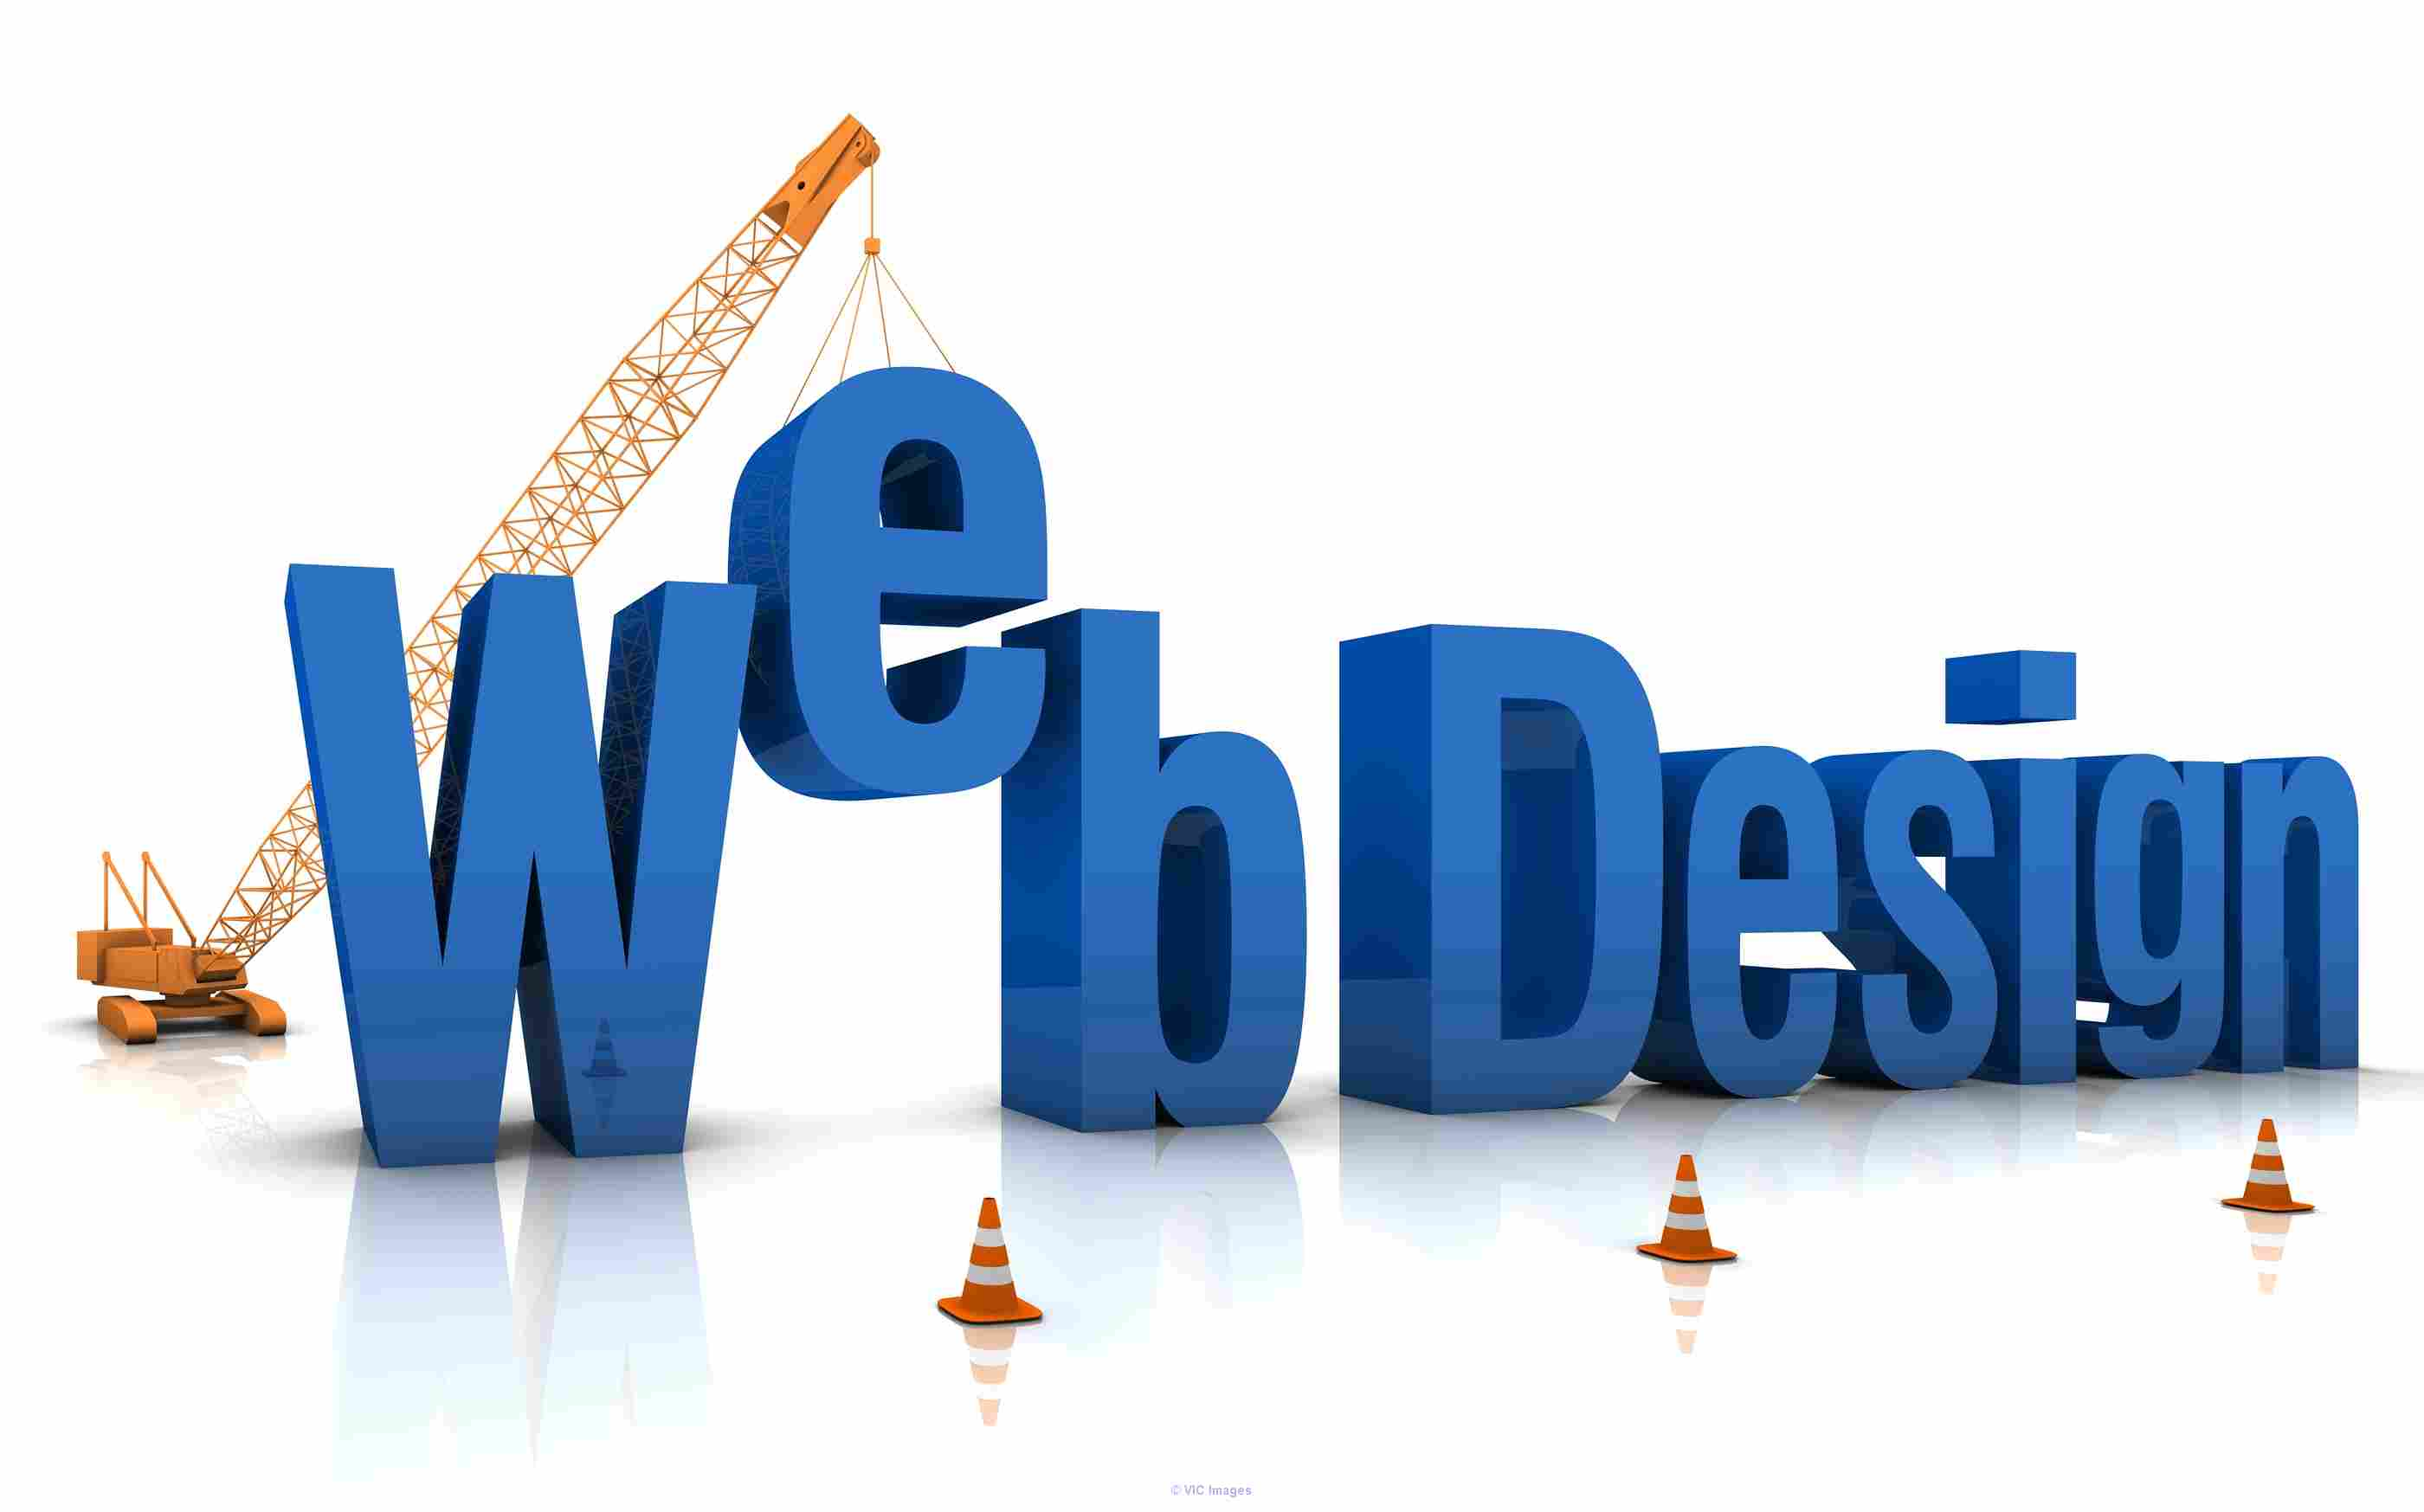 Web design Services in Richmond Hill Calgary, Alberta, Canada Classifieds